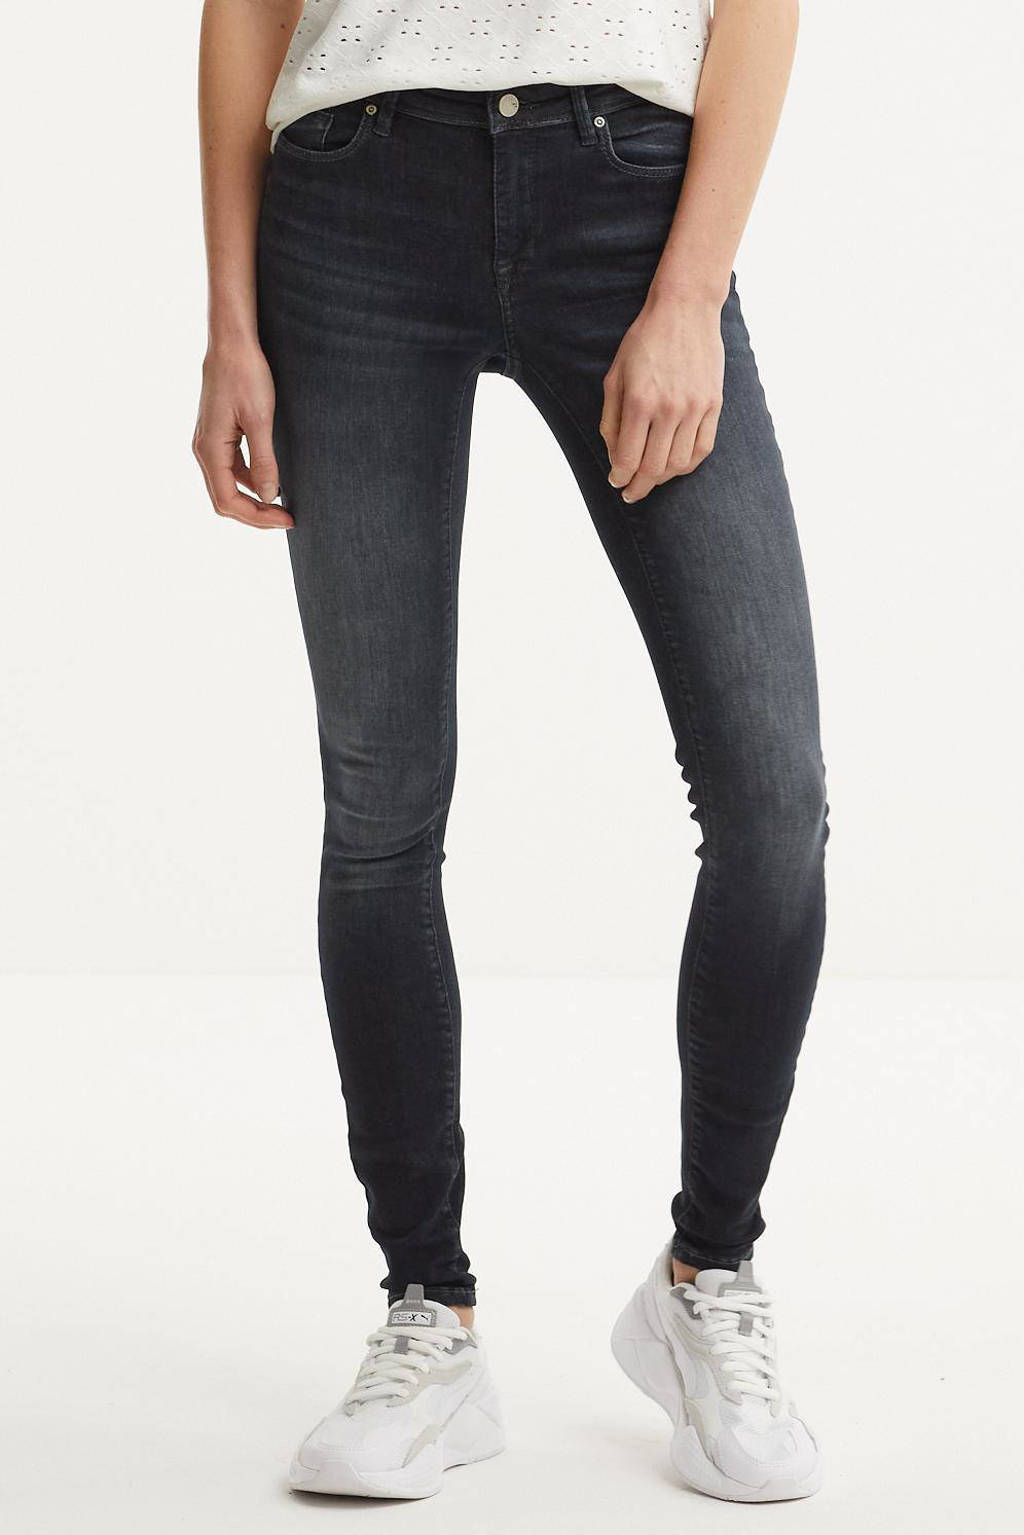 ONLY skinny jeans ONLSHAPE black denim, Black denim